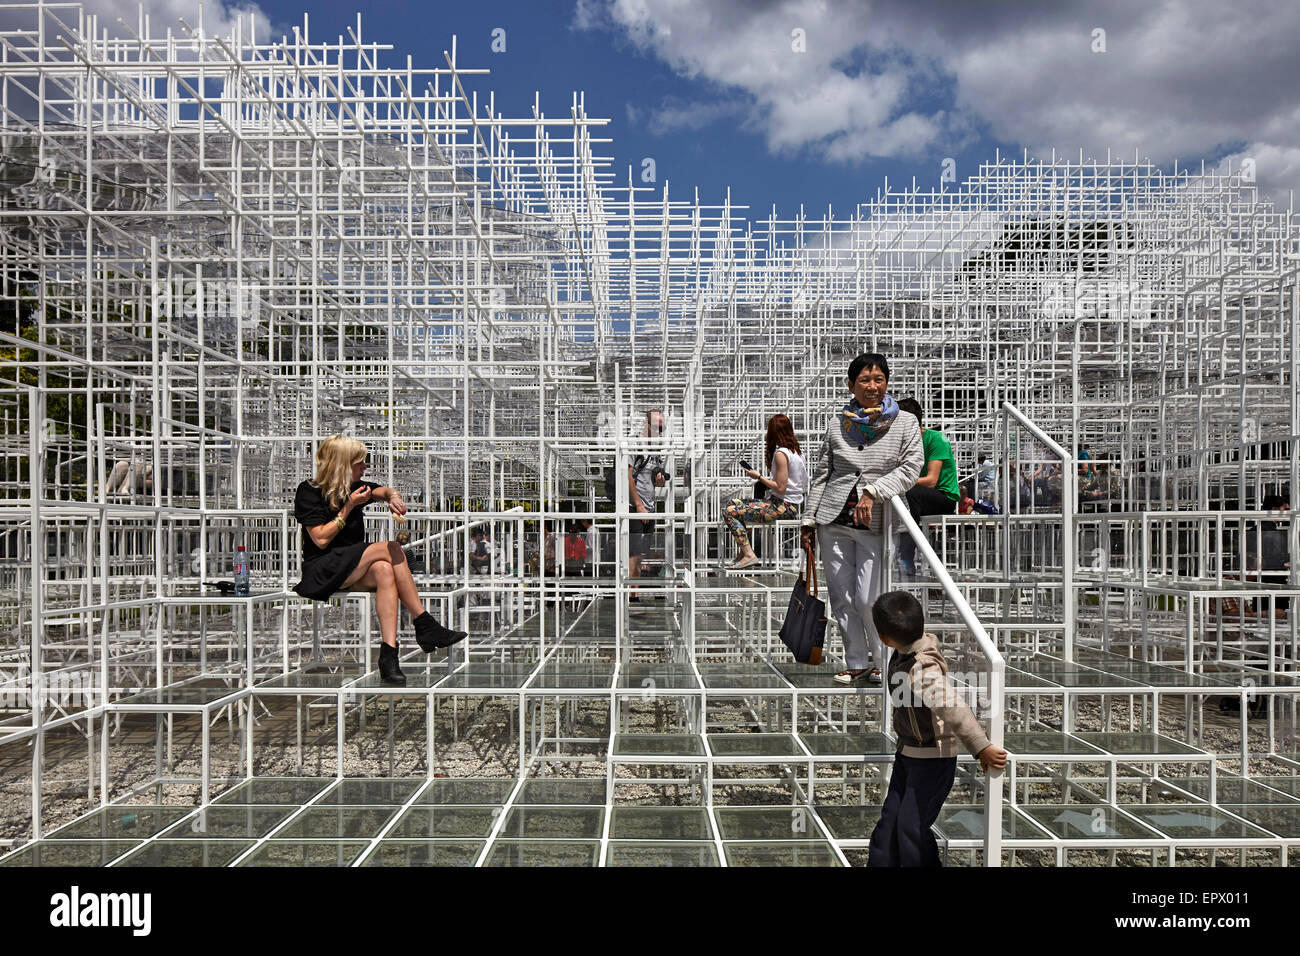 Temporäre architektonische Installation, der Serpentine Pavillon 2013, Kensington Gardens, London, England, Stockbild